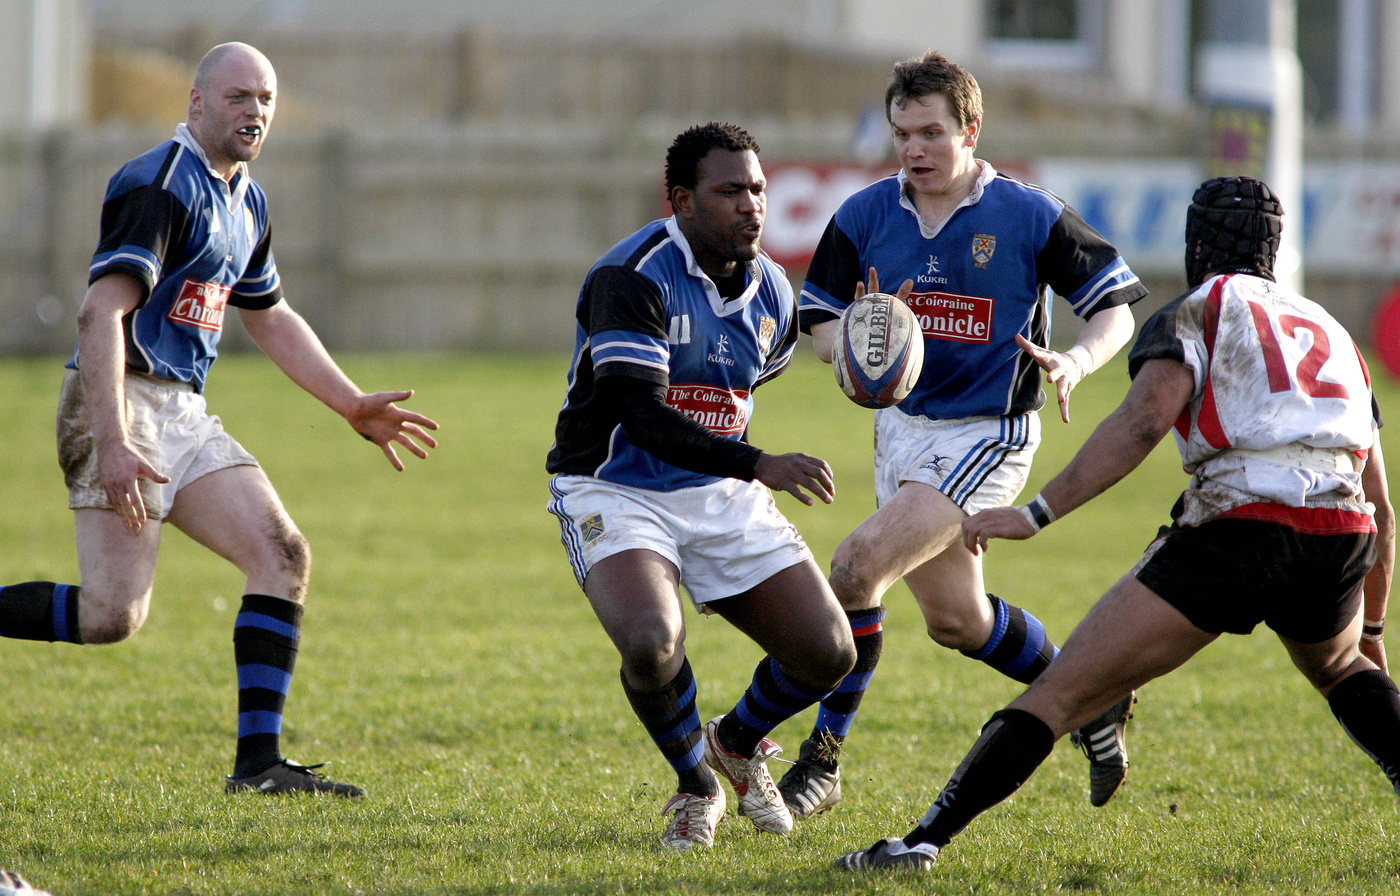 Tommy_from_PMBURG_playing_for_Coleraine_RFC_in_Northern_Ireland_Pic_1.jpg